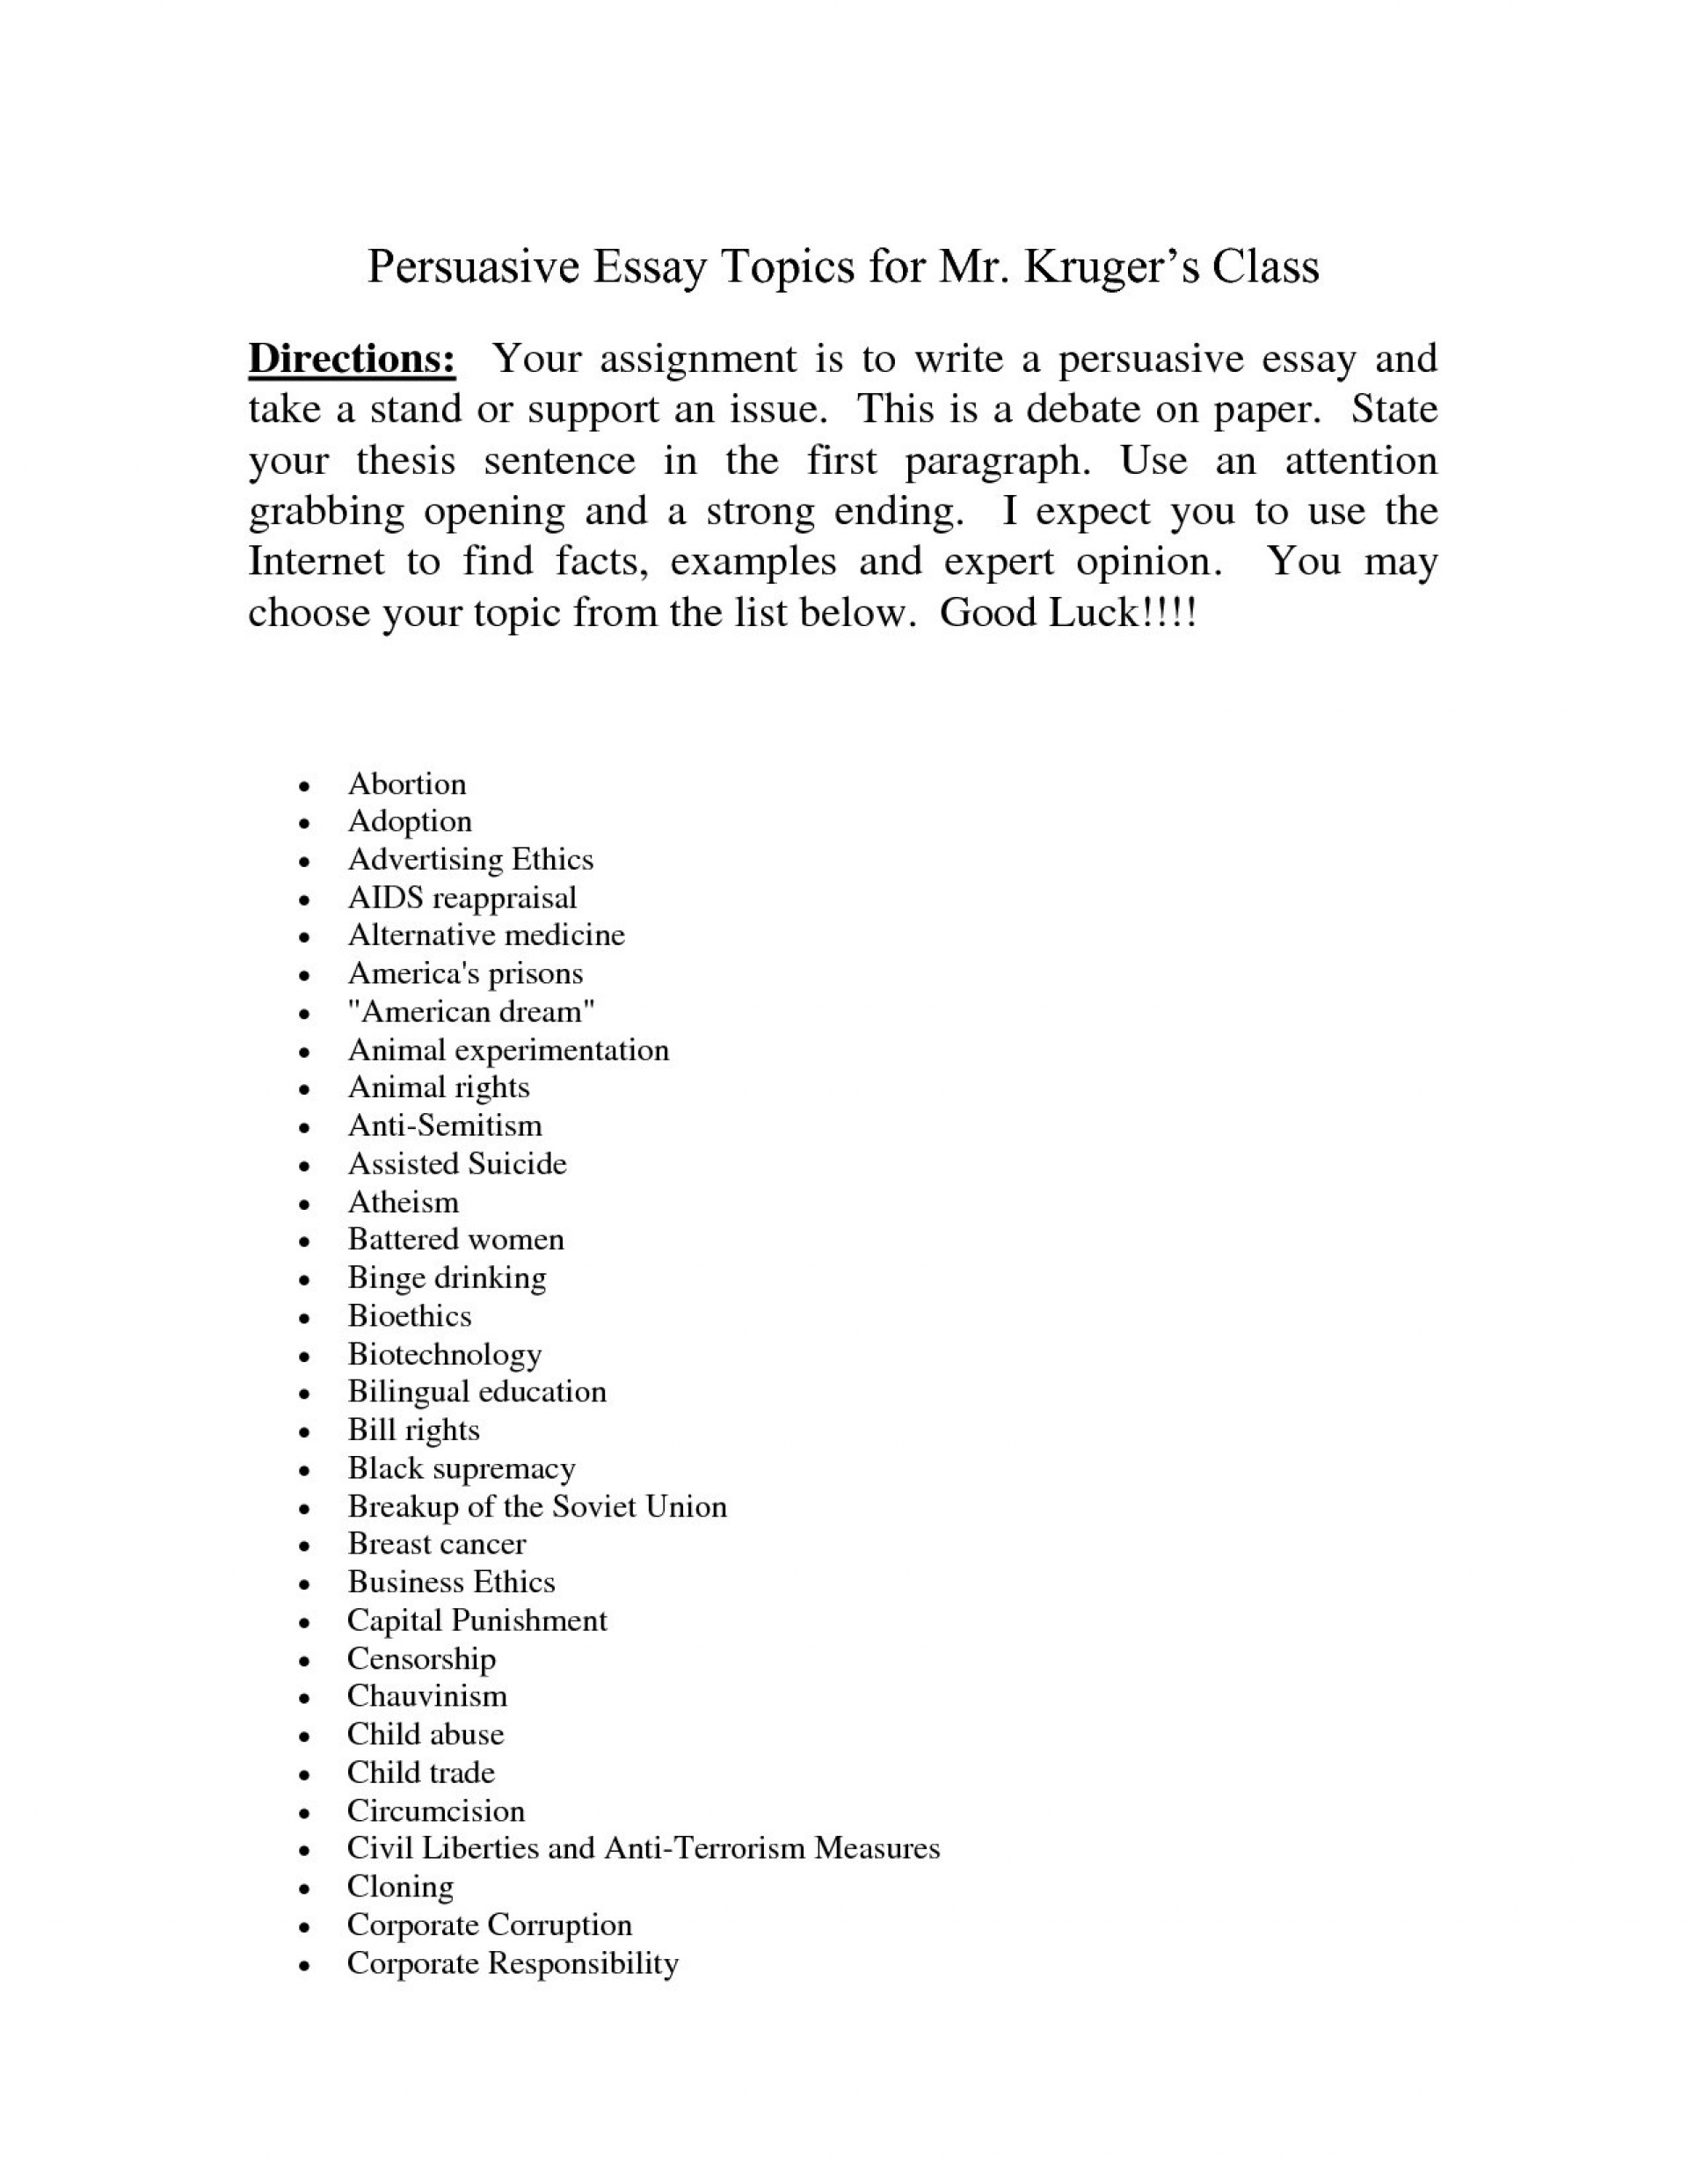 017 Research Paper Argumentative Essay Topics Remarkable 2018 In The Philippines Easy Middle School 1920